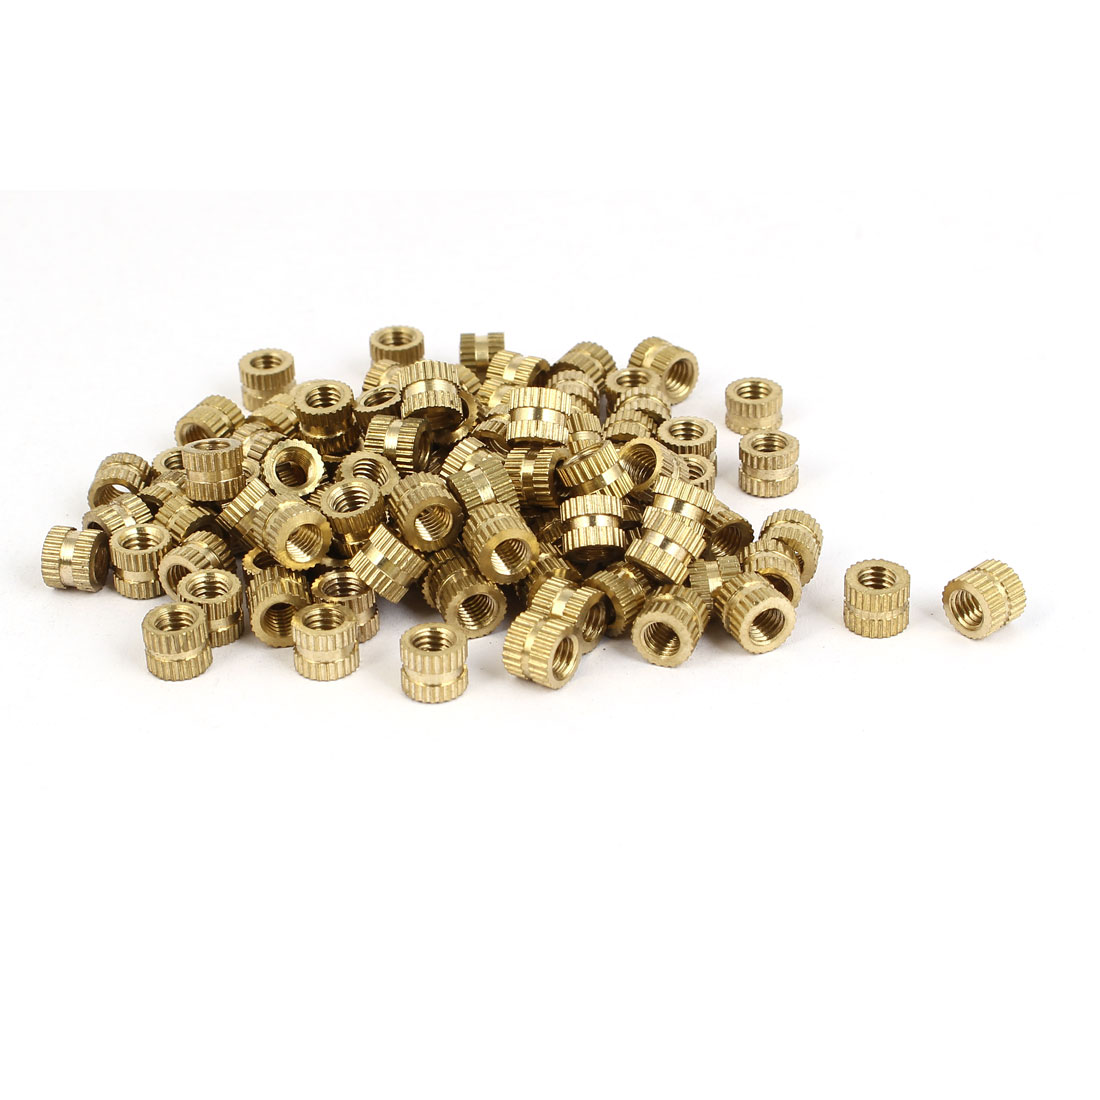 M5 x 6mm x 7.3mm Brass Cylinder Knurled Threaded Insert Embedded Nuts 100PCS